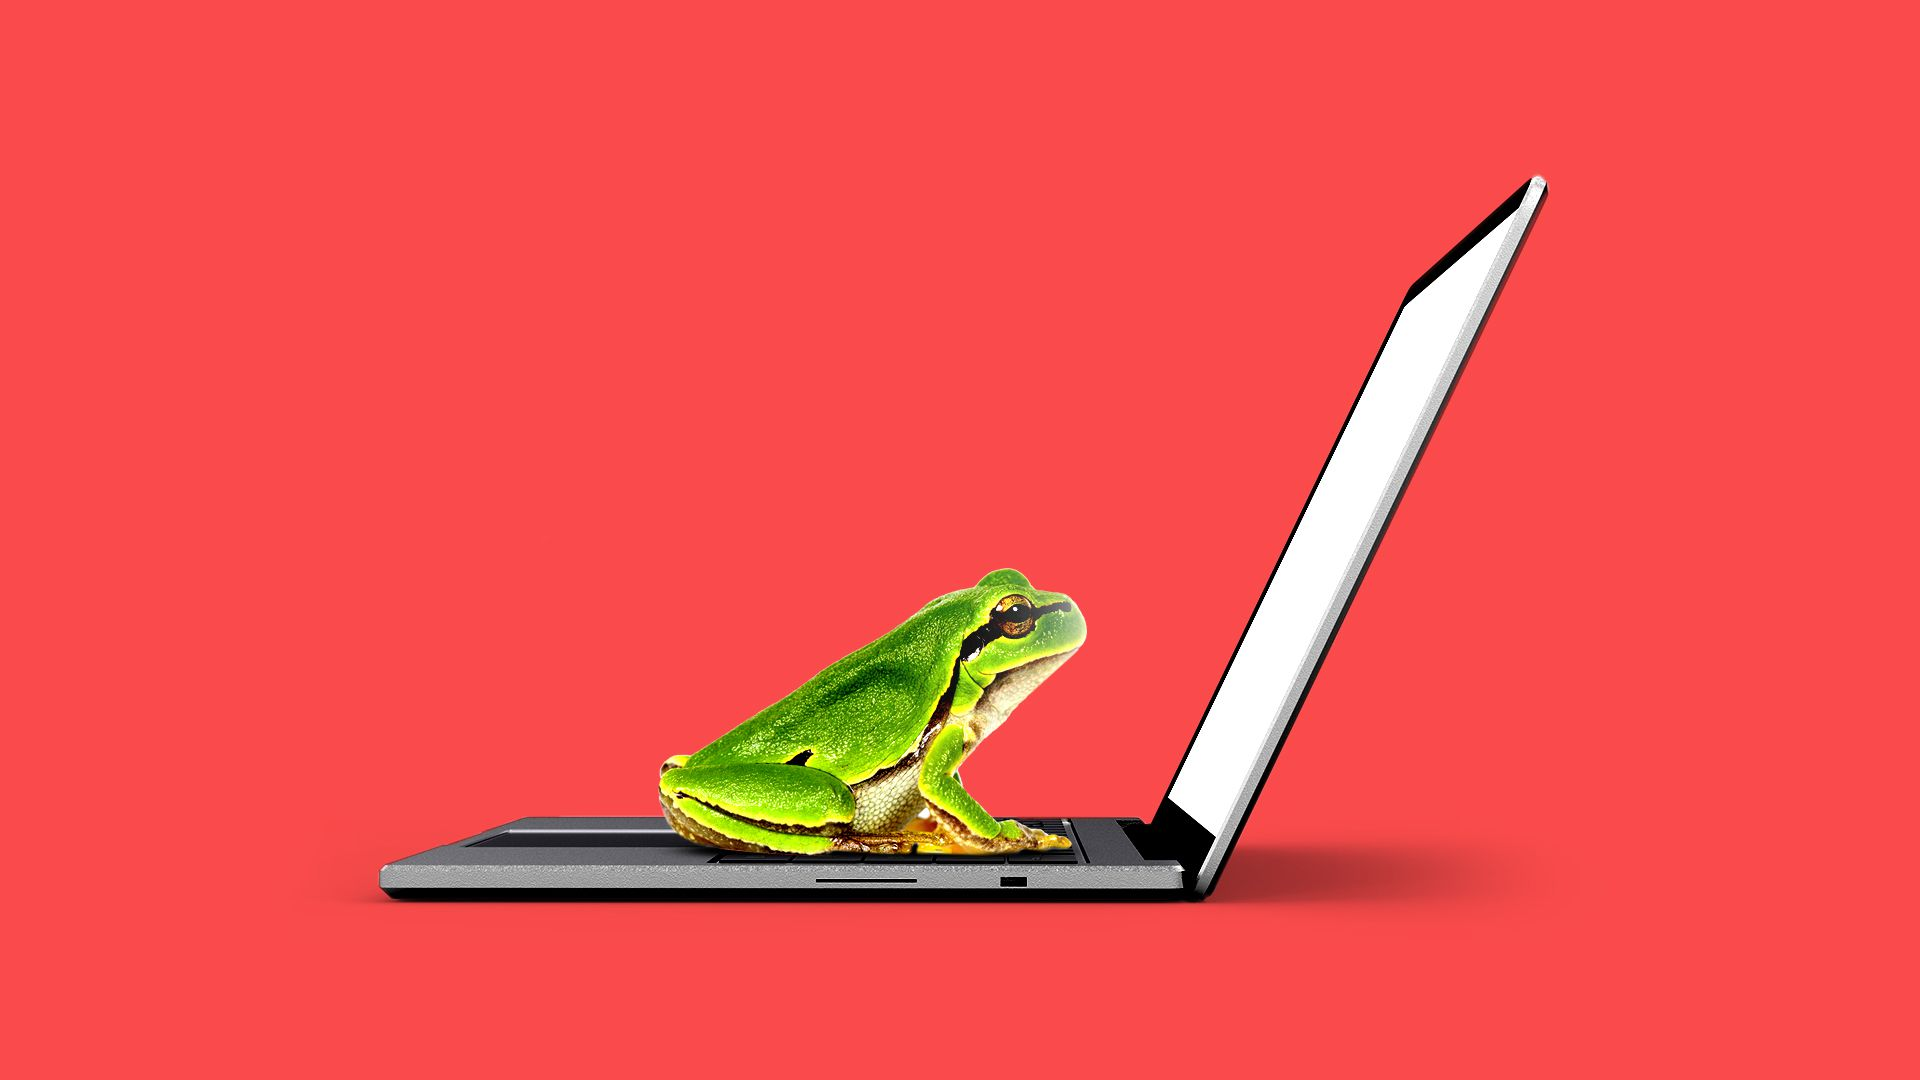 Illustration of a frog on a laptop